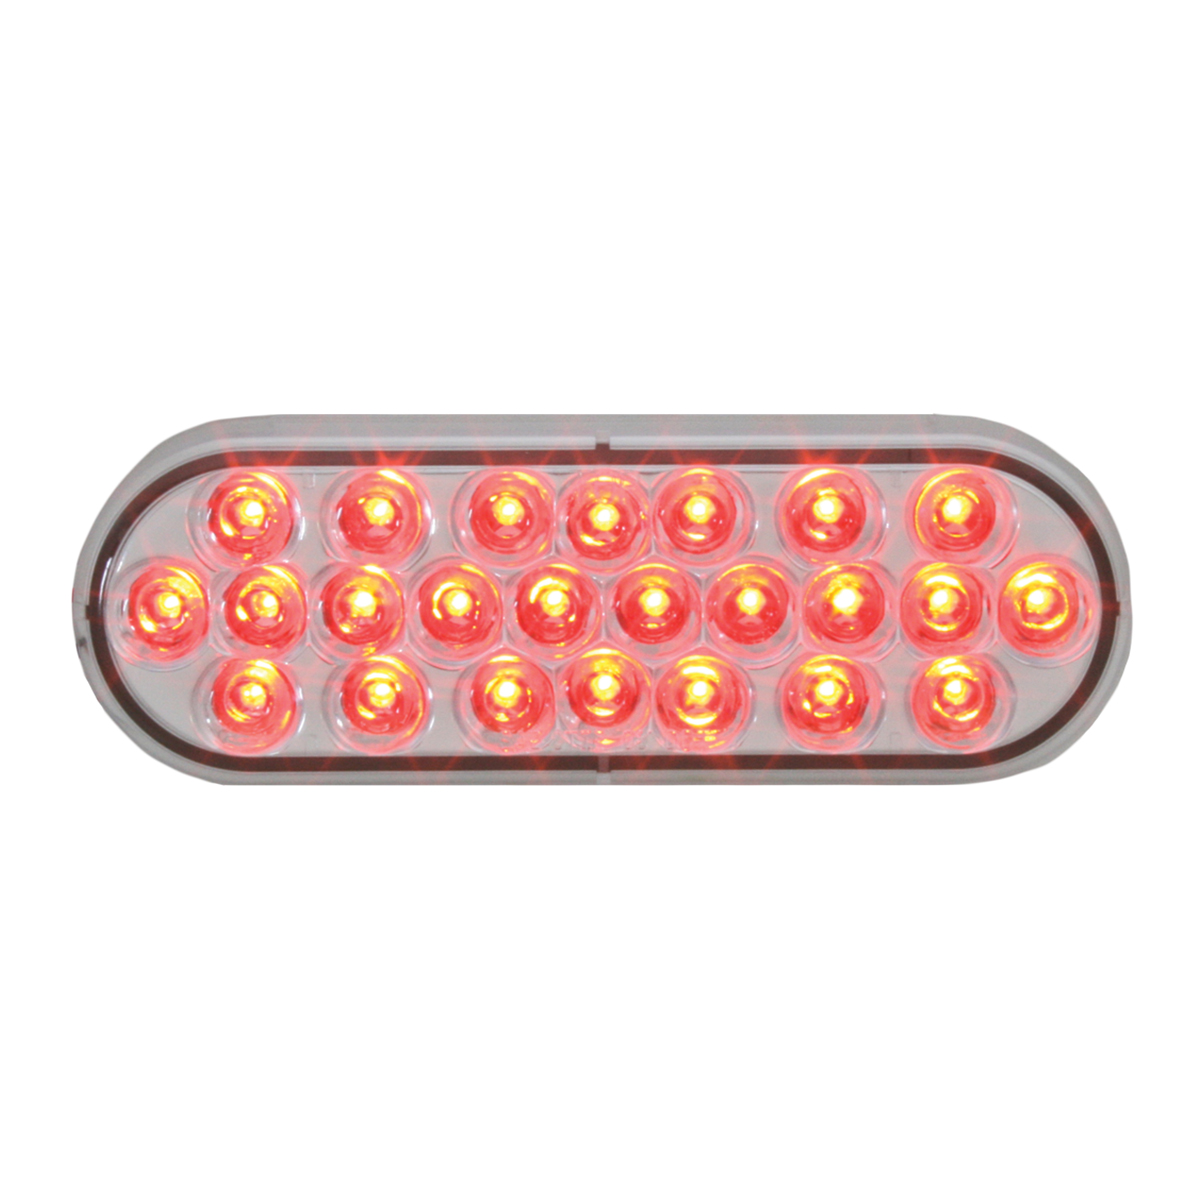 76528 Oval Pearl LED Strobe Light in Red/Clear